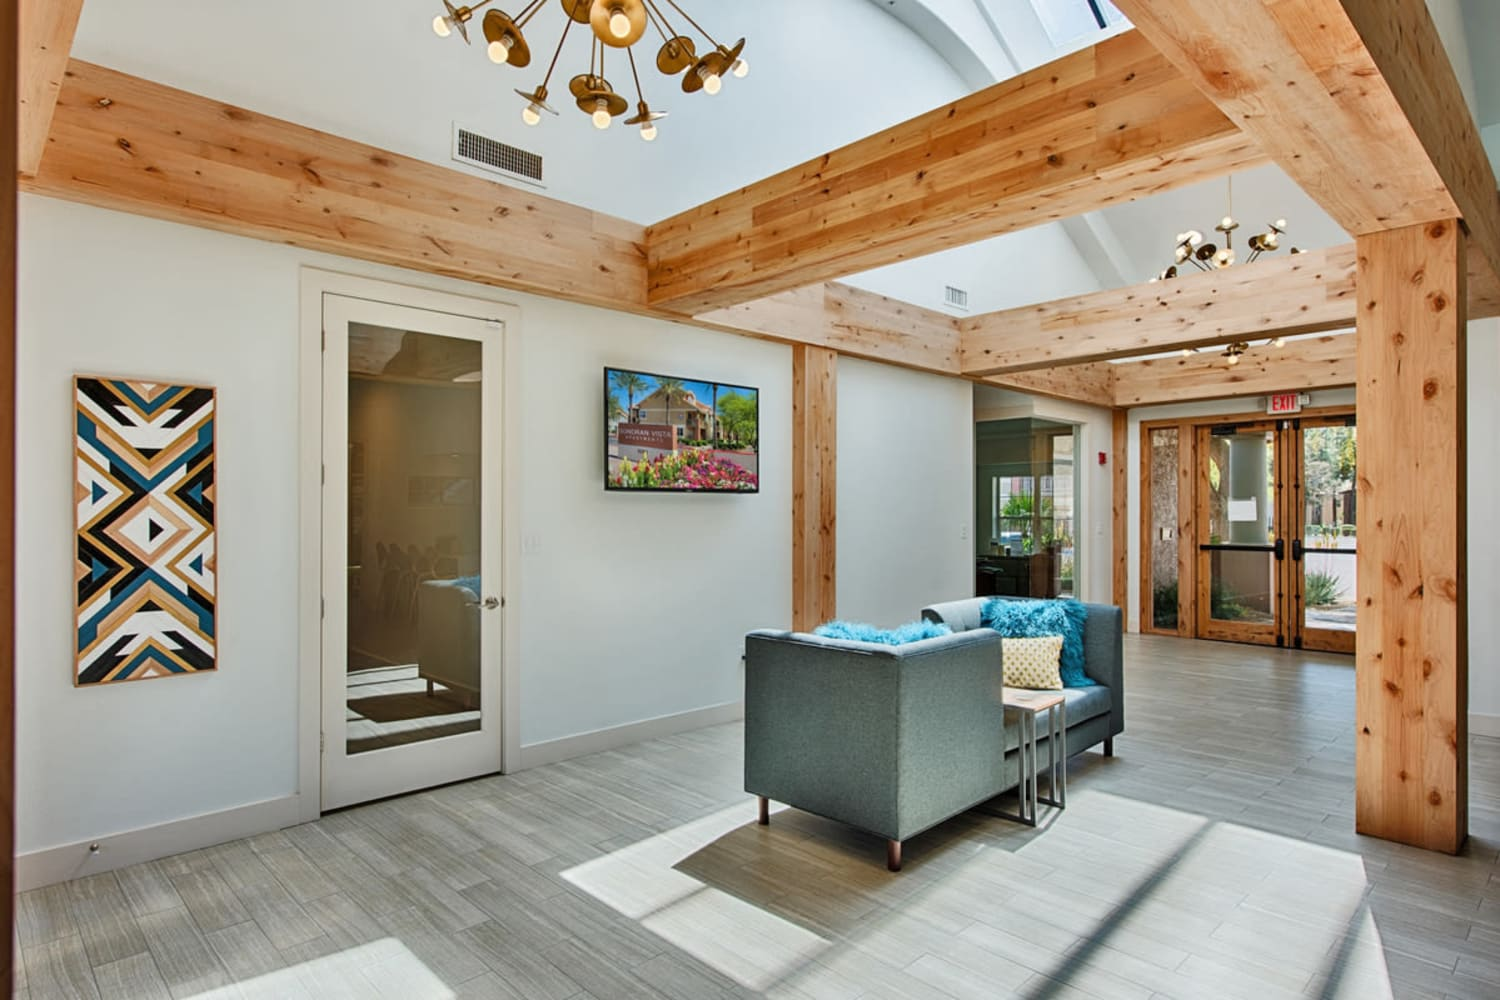 Wooden beams add an architectural touch to the clubhouse at Sonoran Vista Apartments in Scottsdale, Arizona